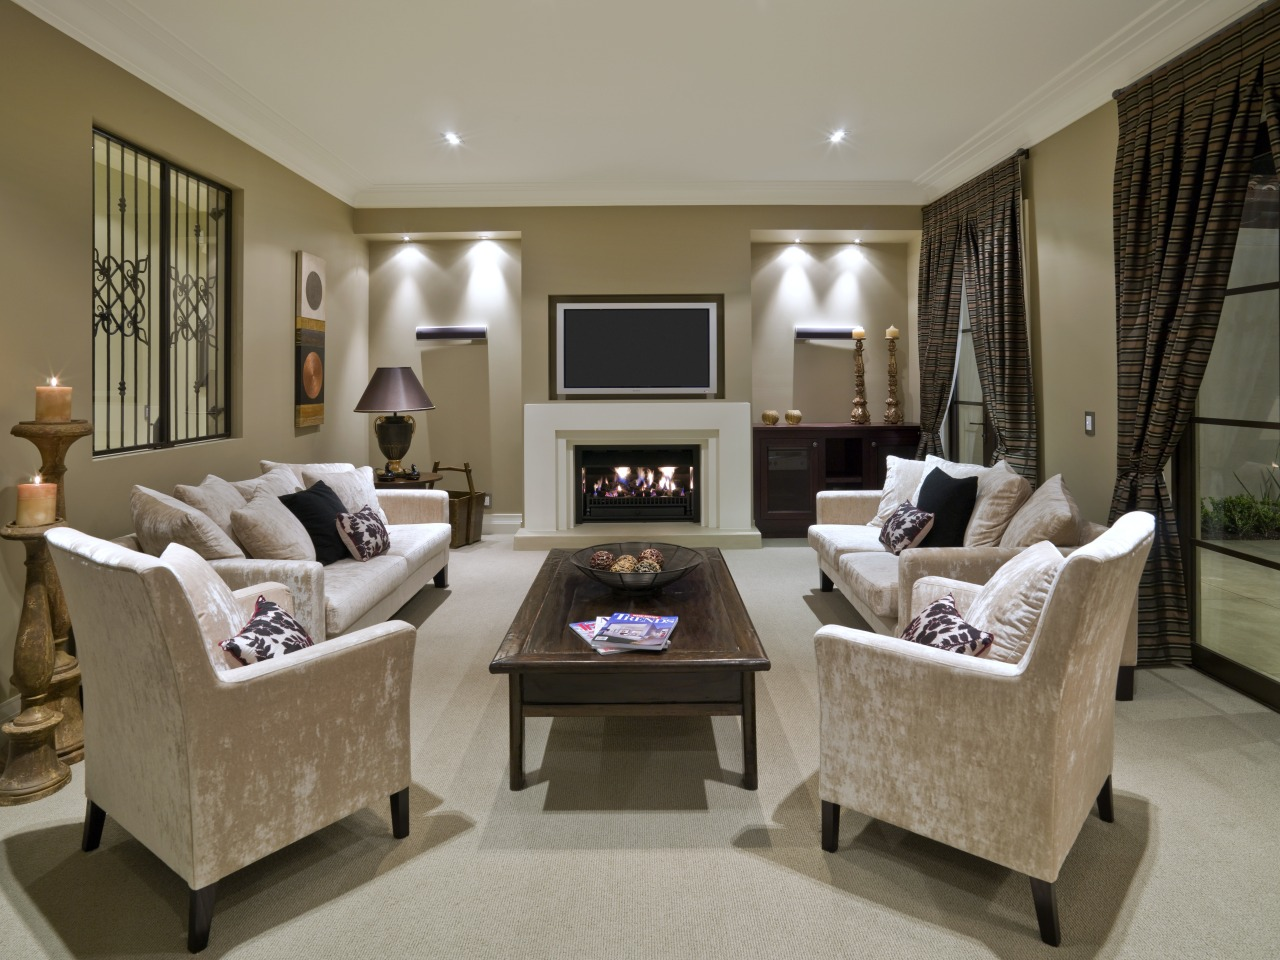 A view of a fireplace from Real Fires. floor, flooring, furniture, home, interior design, living room, real estate, room, window, brown, gray